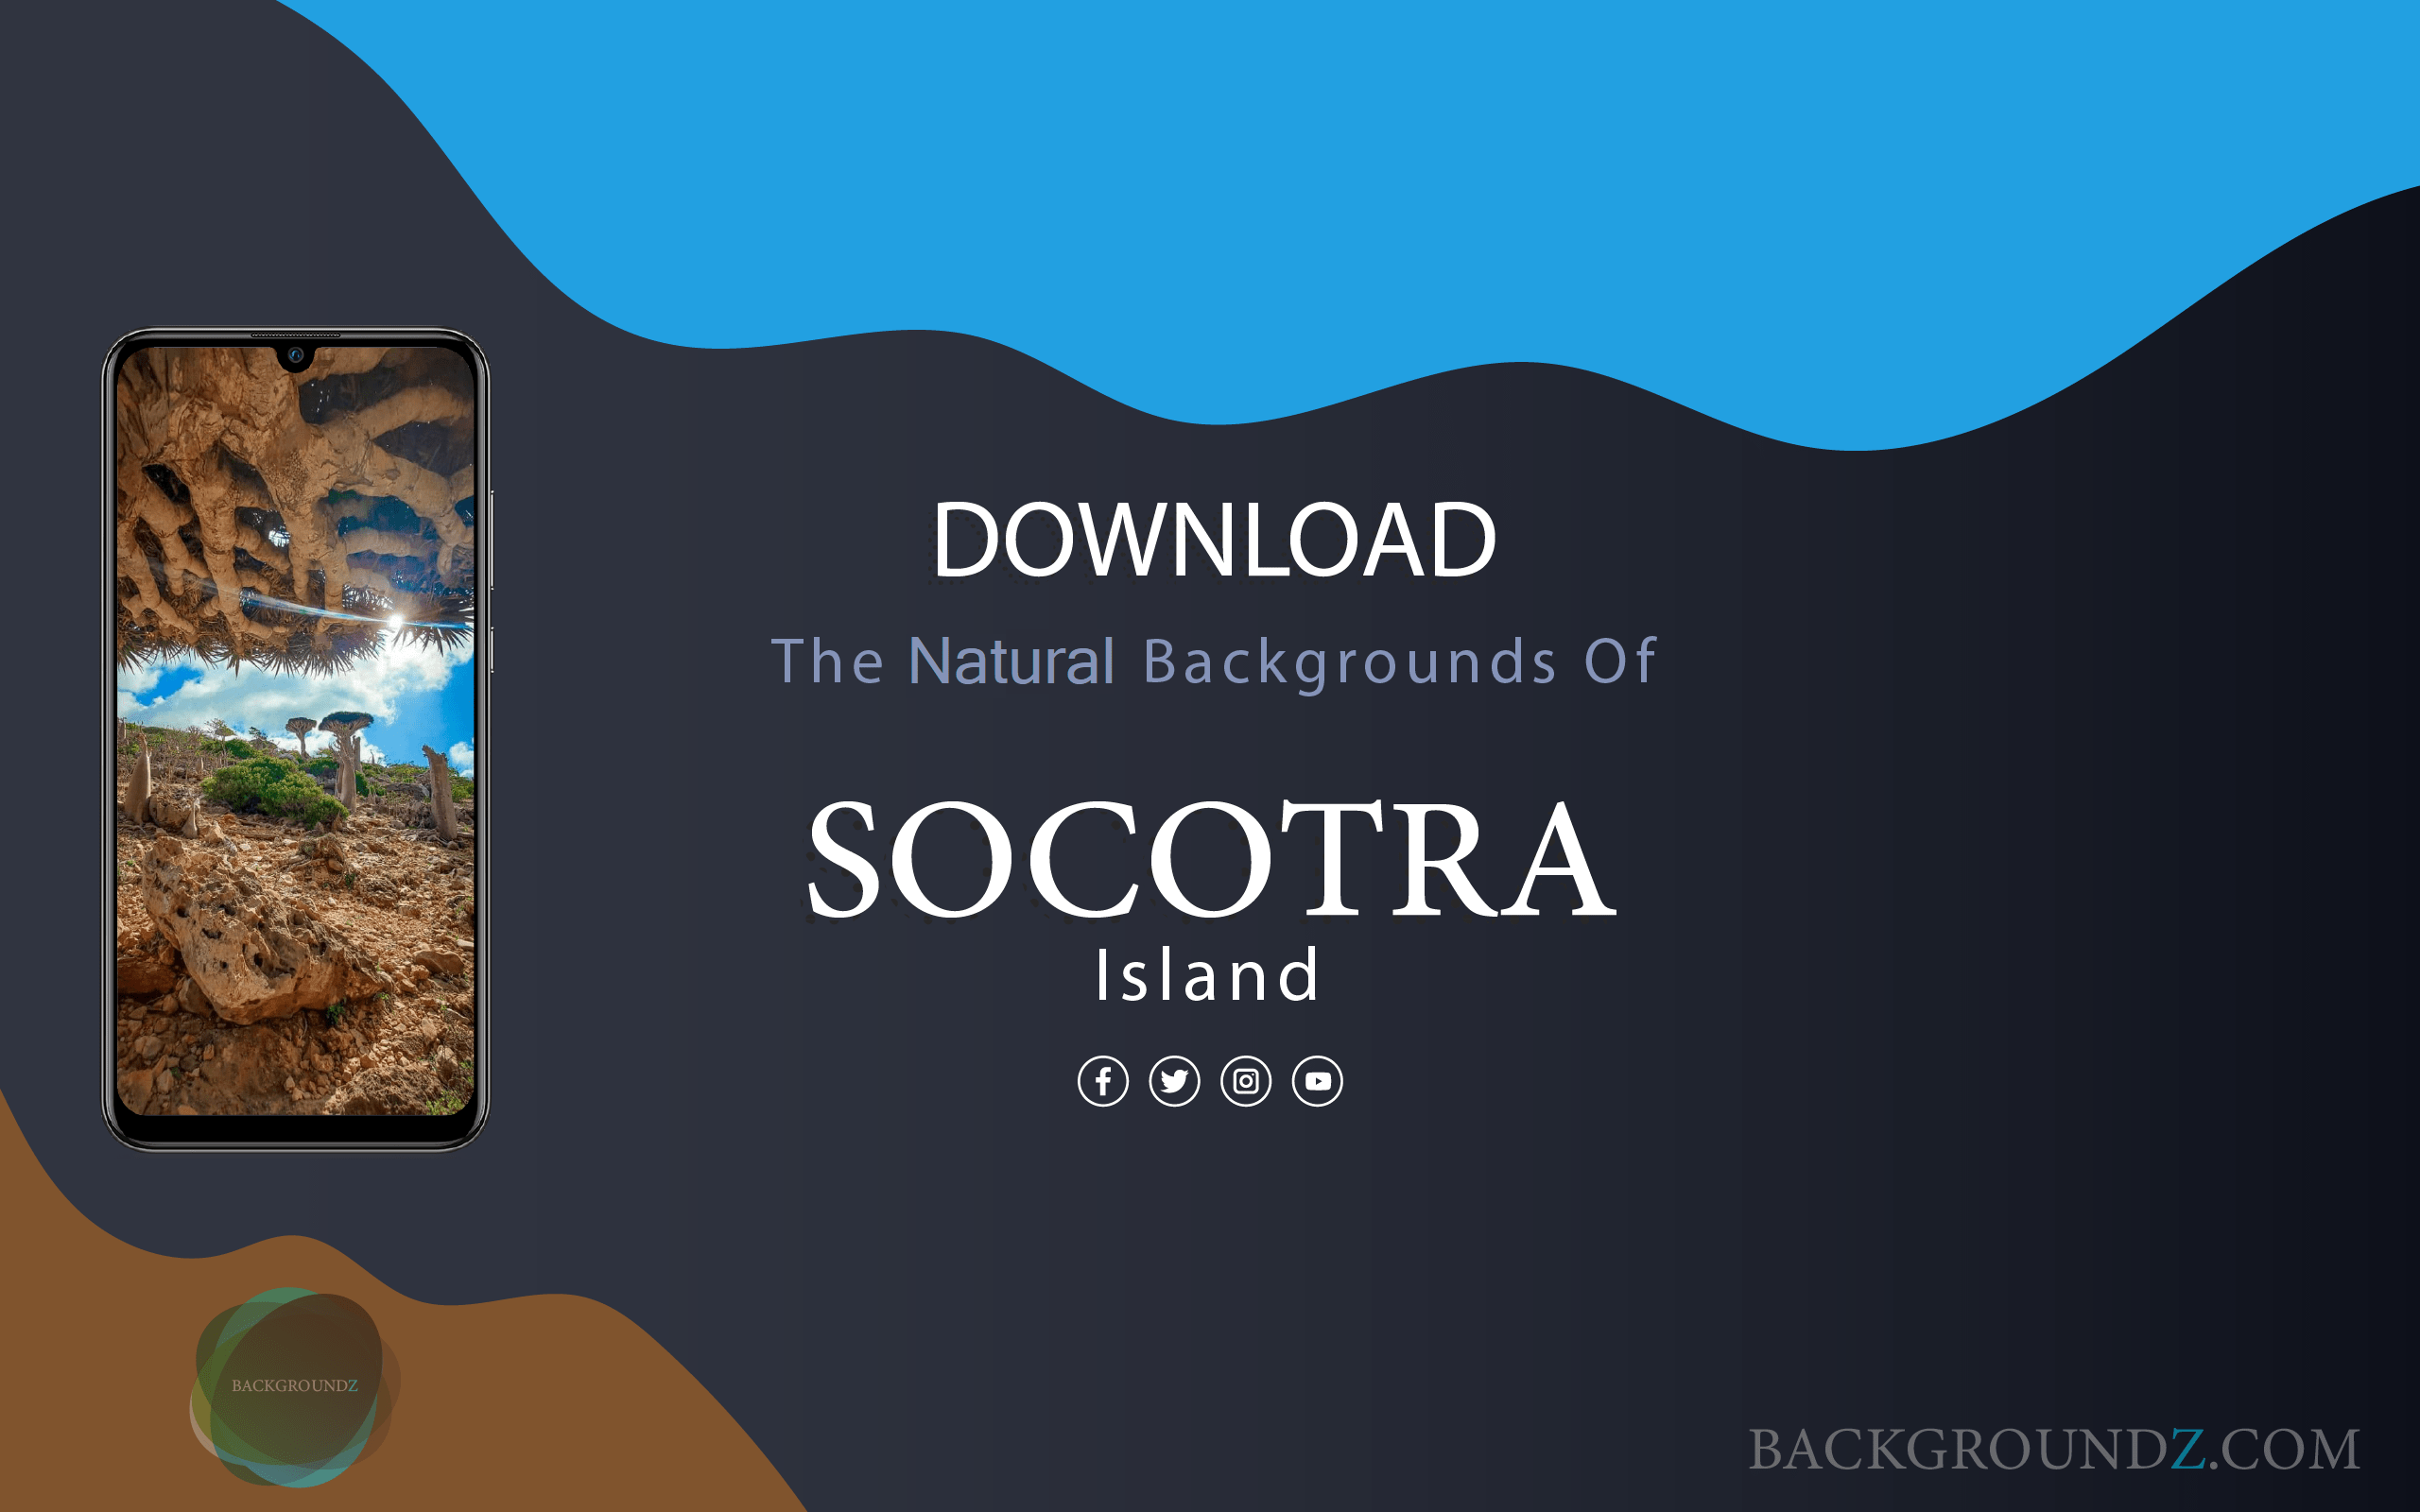 Socotra Island Backgrounds | Top 70 Natural Wallpapers